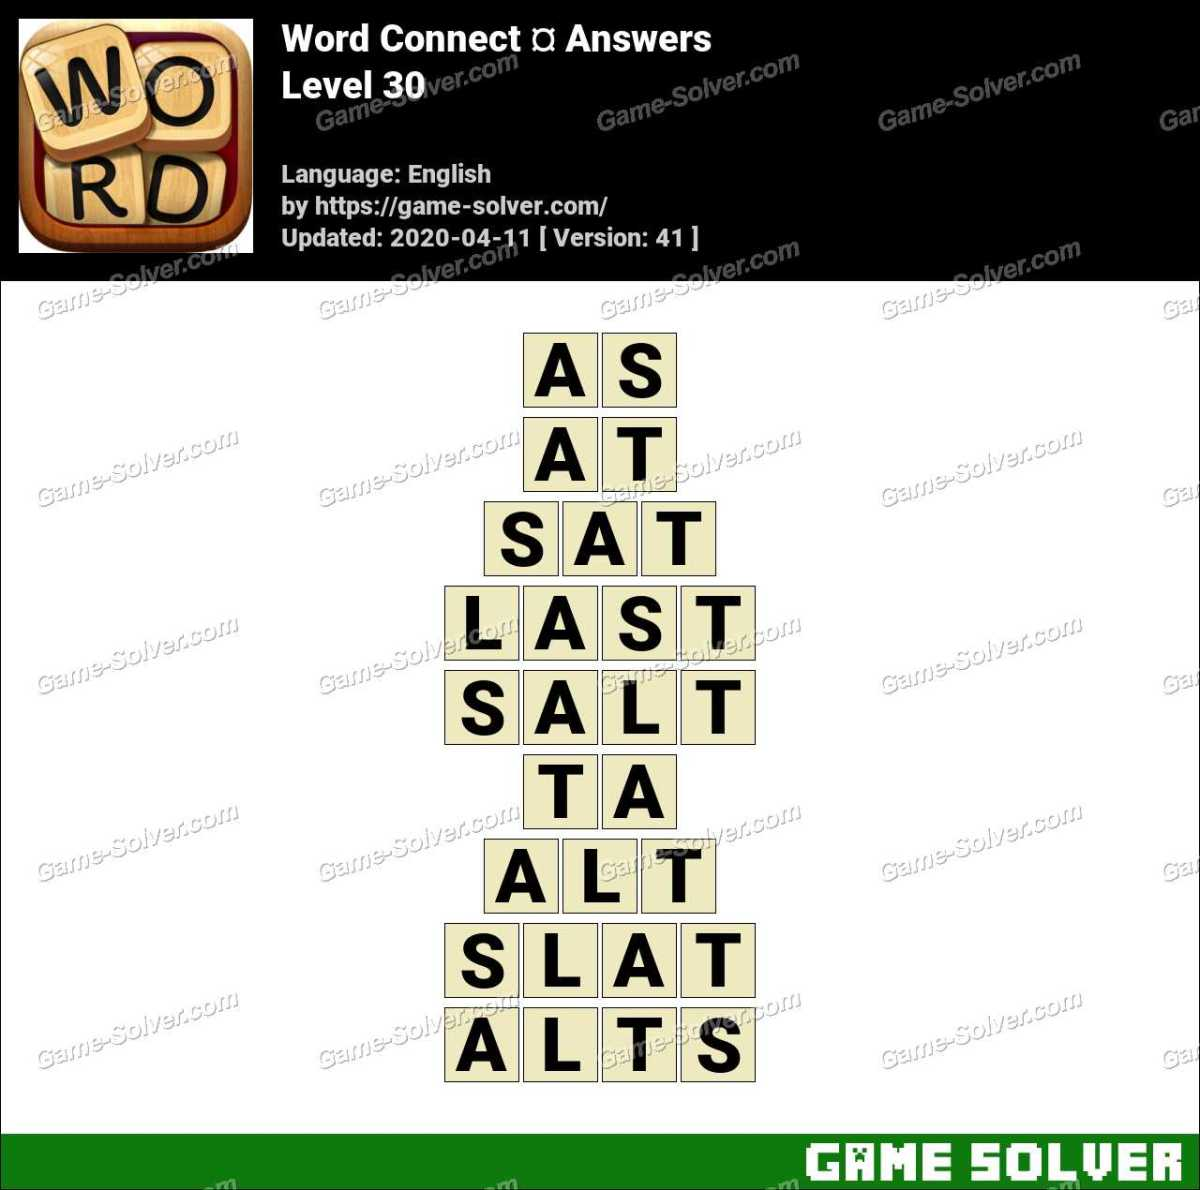 Word Connect Level 30 Answers